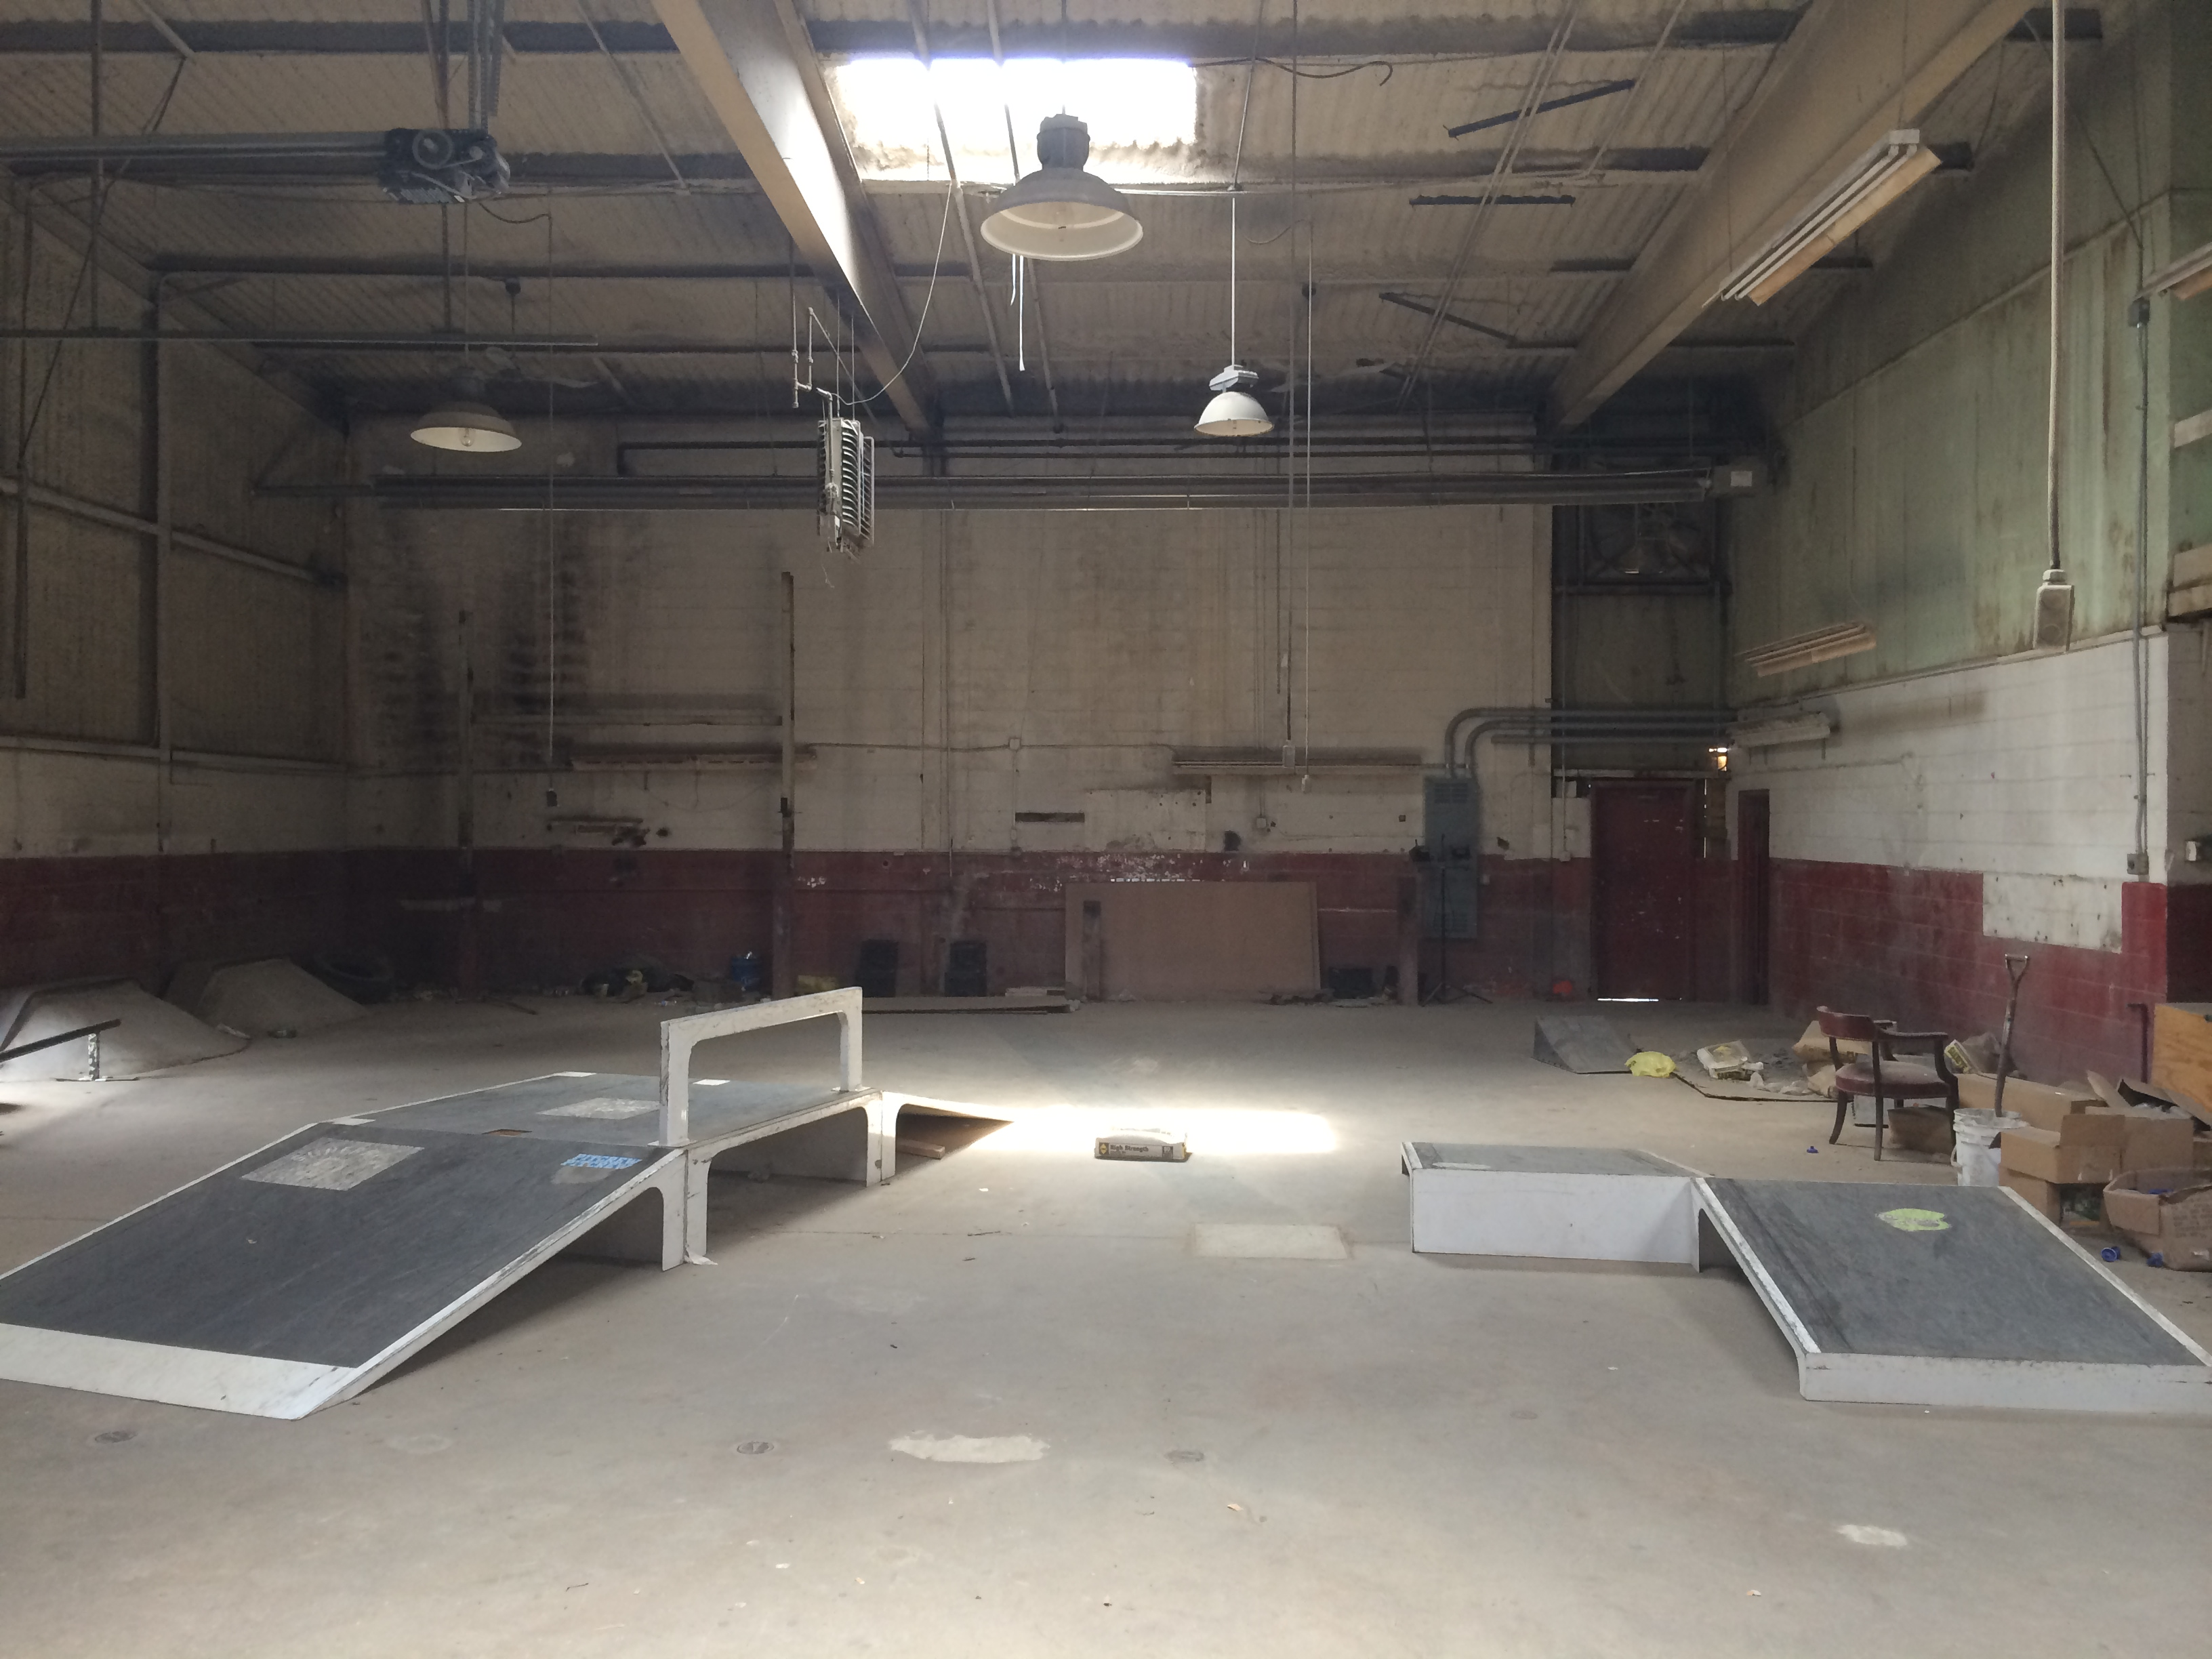 A warehouse would provide the space we needed, if we could just find the right one. This was one of the earliest we considered, but it was pretty remote and security was an issue.